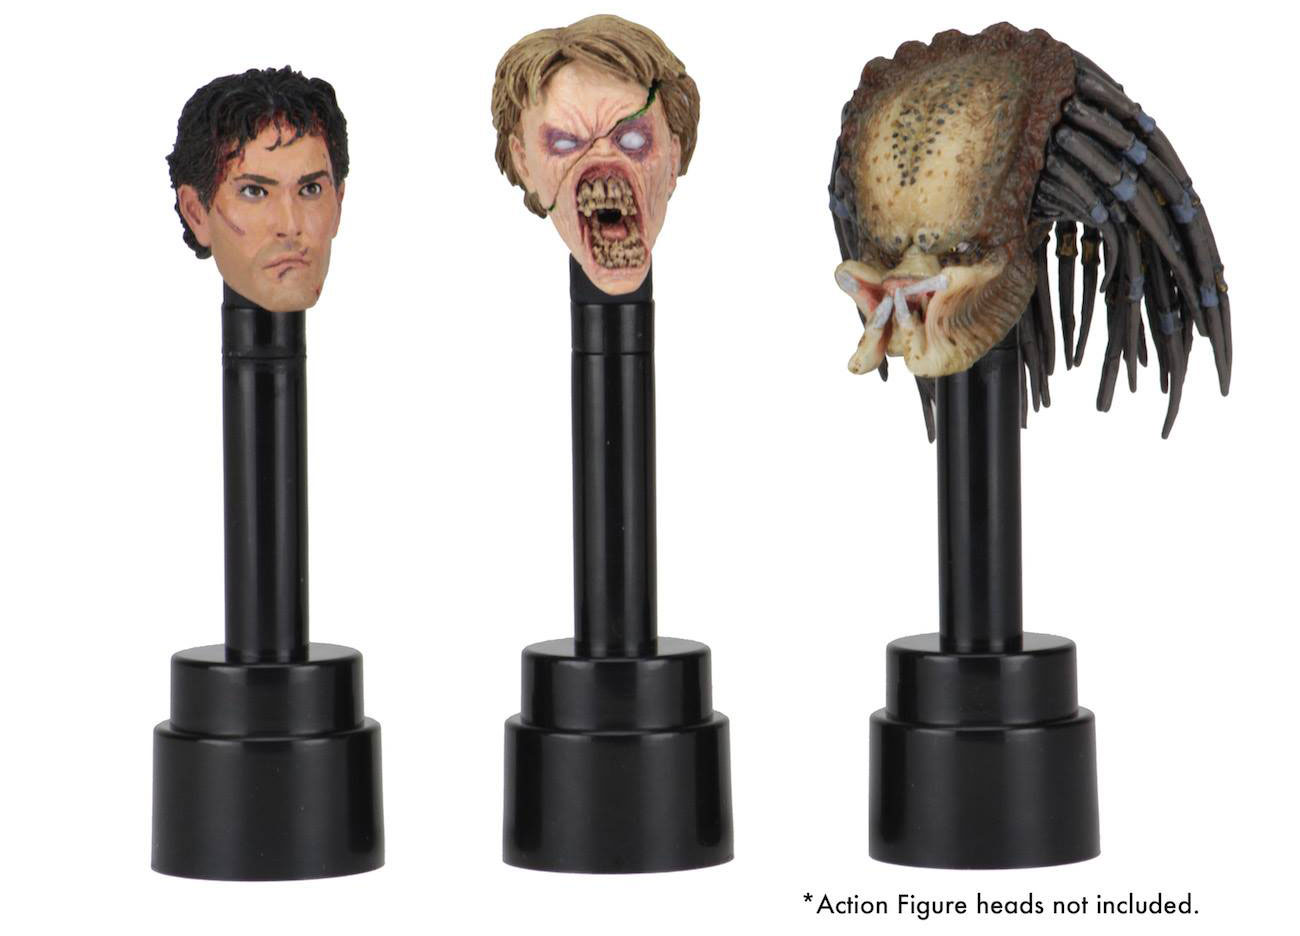 neca-action-figure-head-display-stands